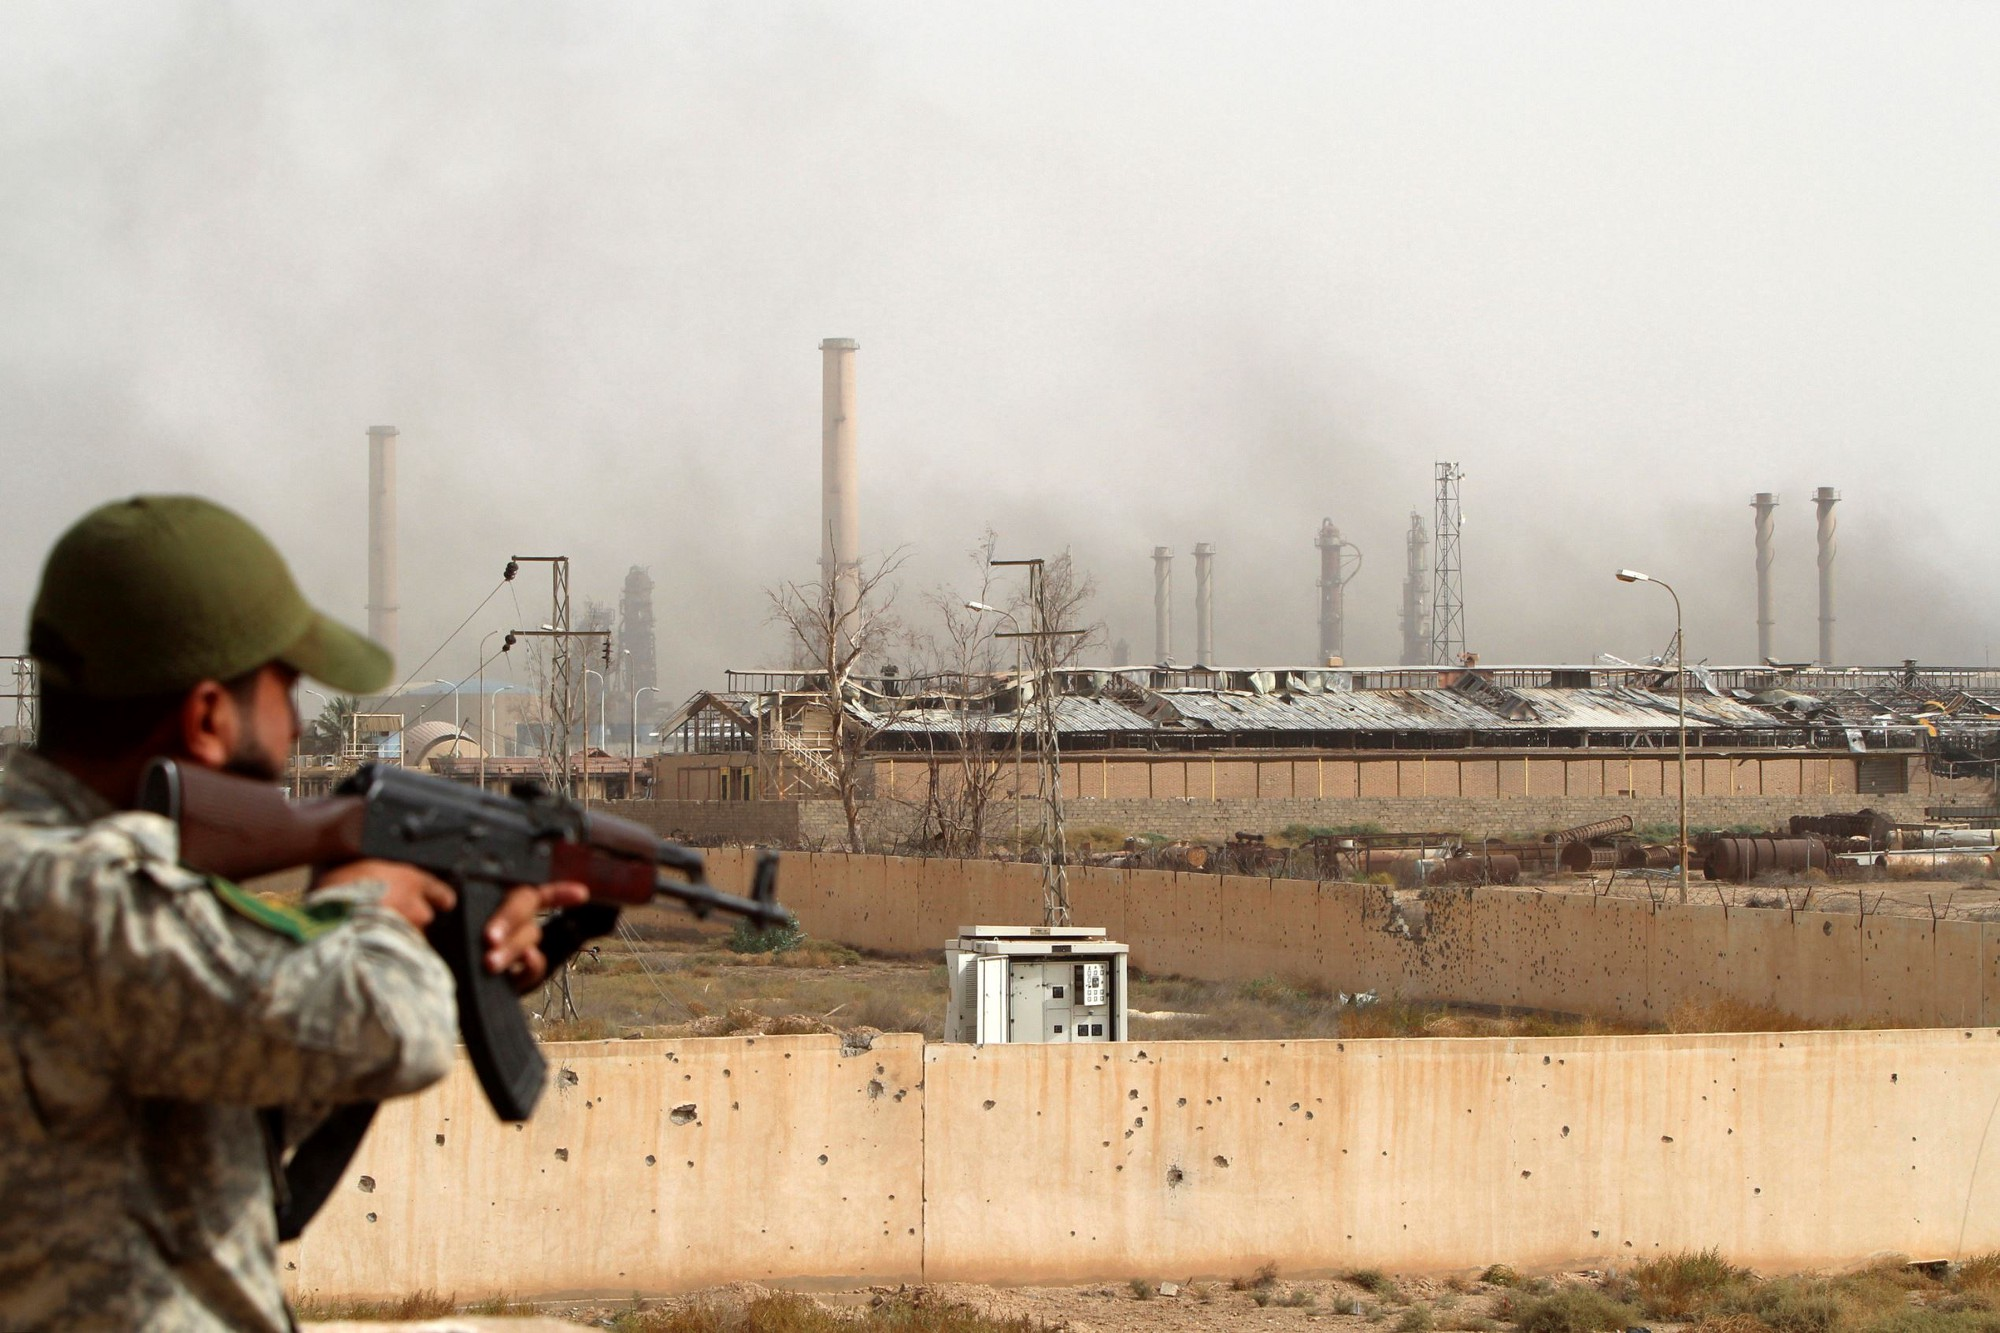 Libyan rebels will not allow Russia to develop oil and gas in their country